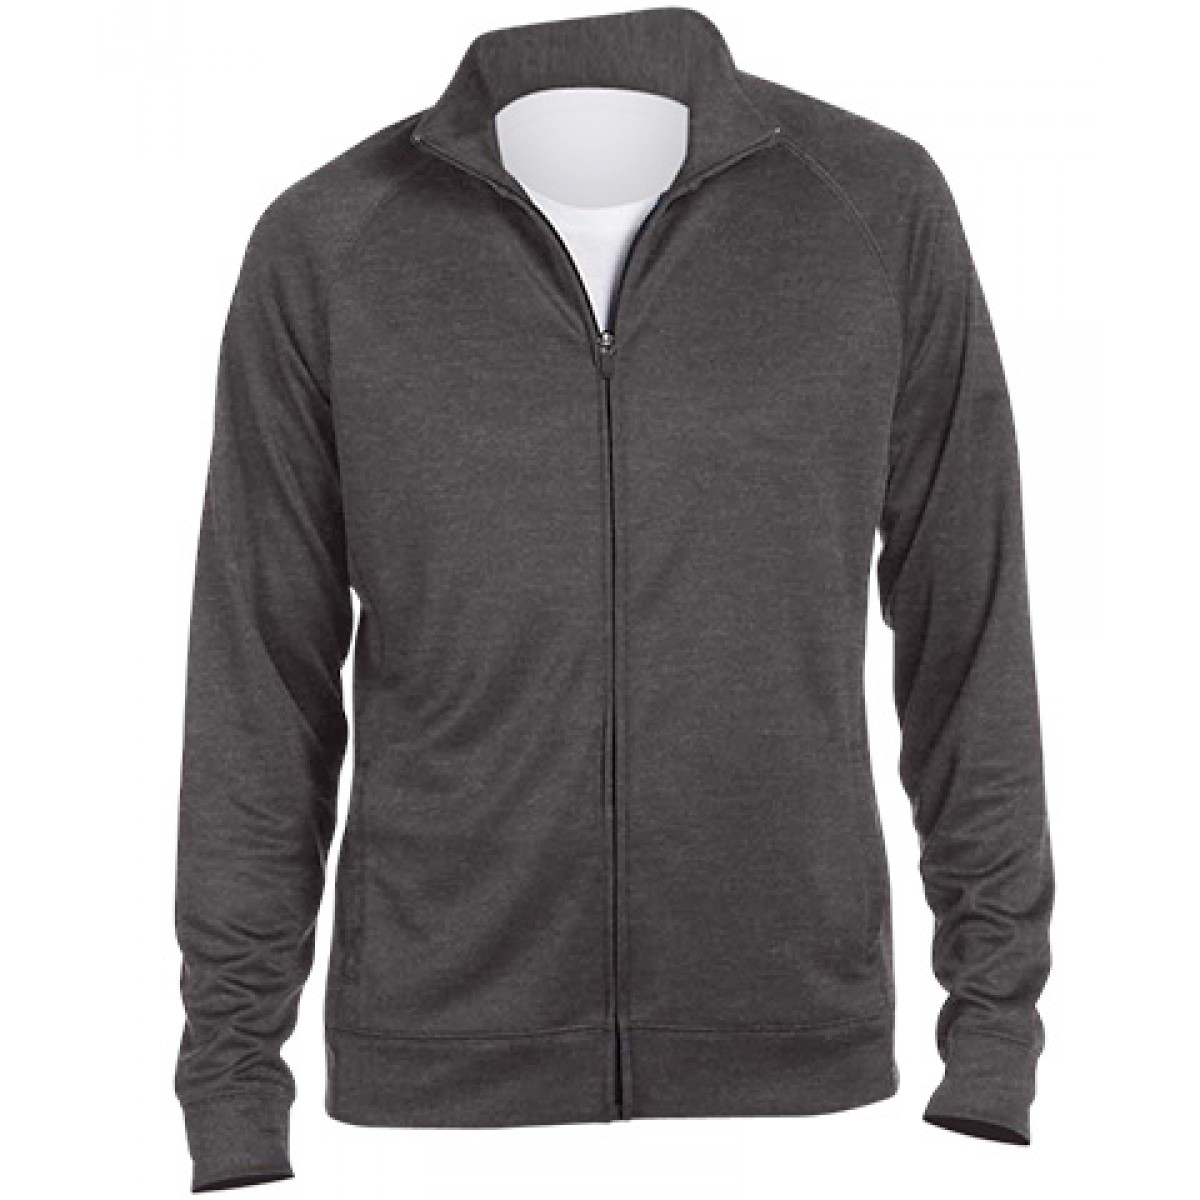 Men's Lightweight Sports Jacket-Sports Grey-XL